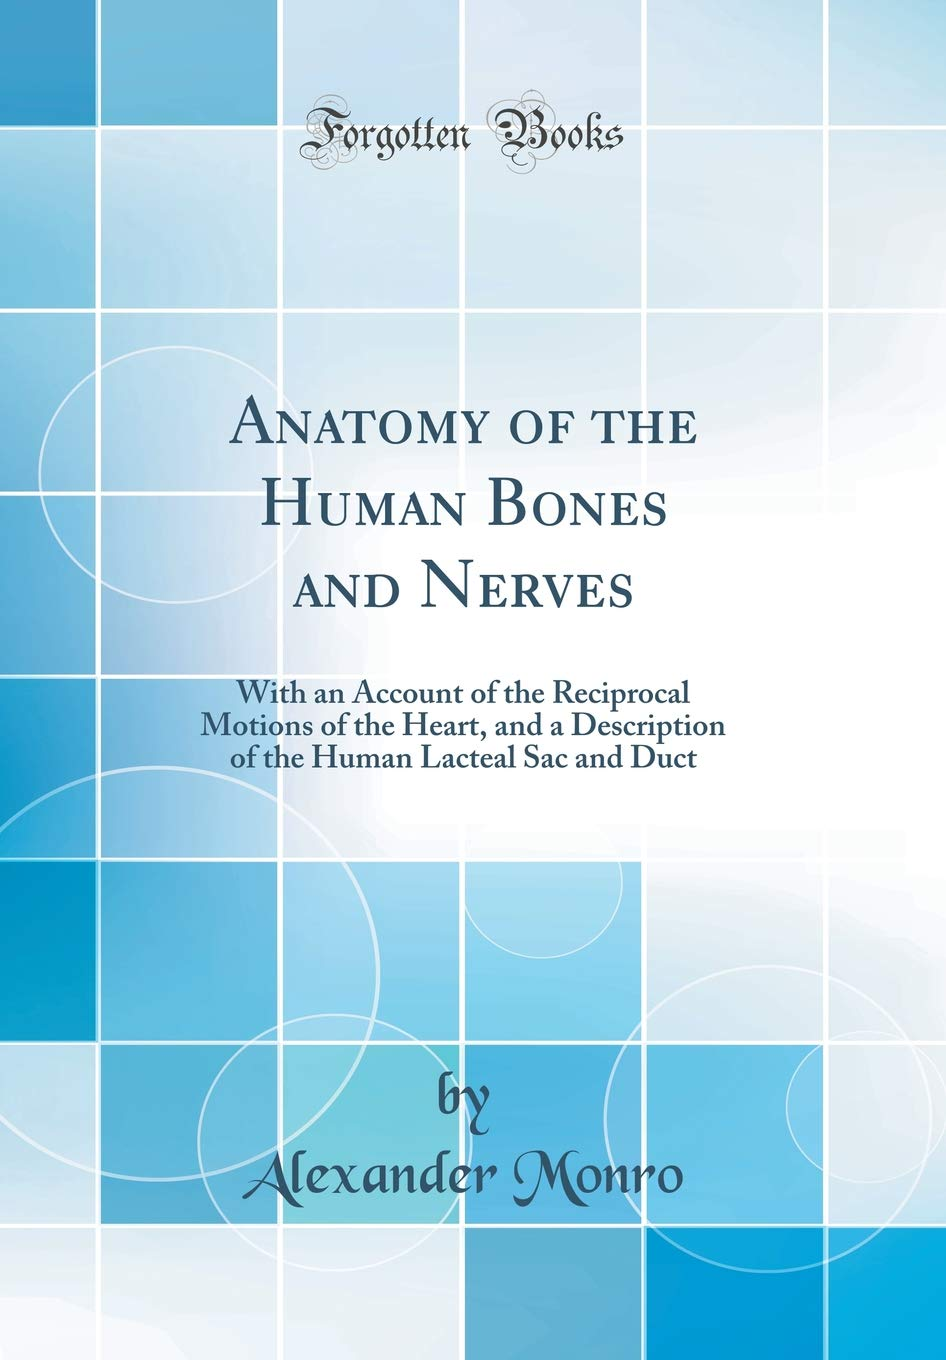 Anatomy of the Human Bones and Nerves: With an Account of the Reciprocal Motions of the Heart, and a Description of the Human Lacteal Sac and Duct (Classic Reprint) ebook